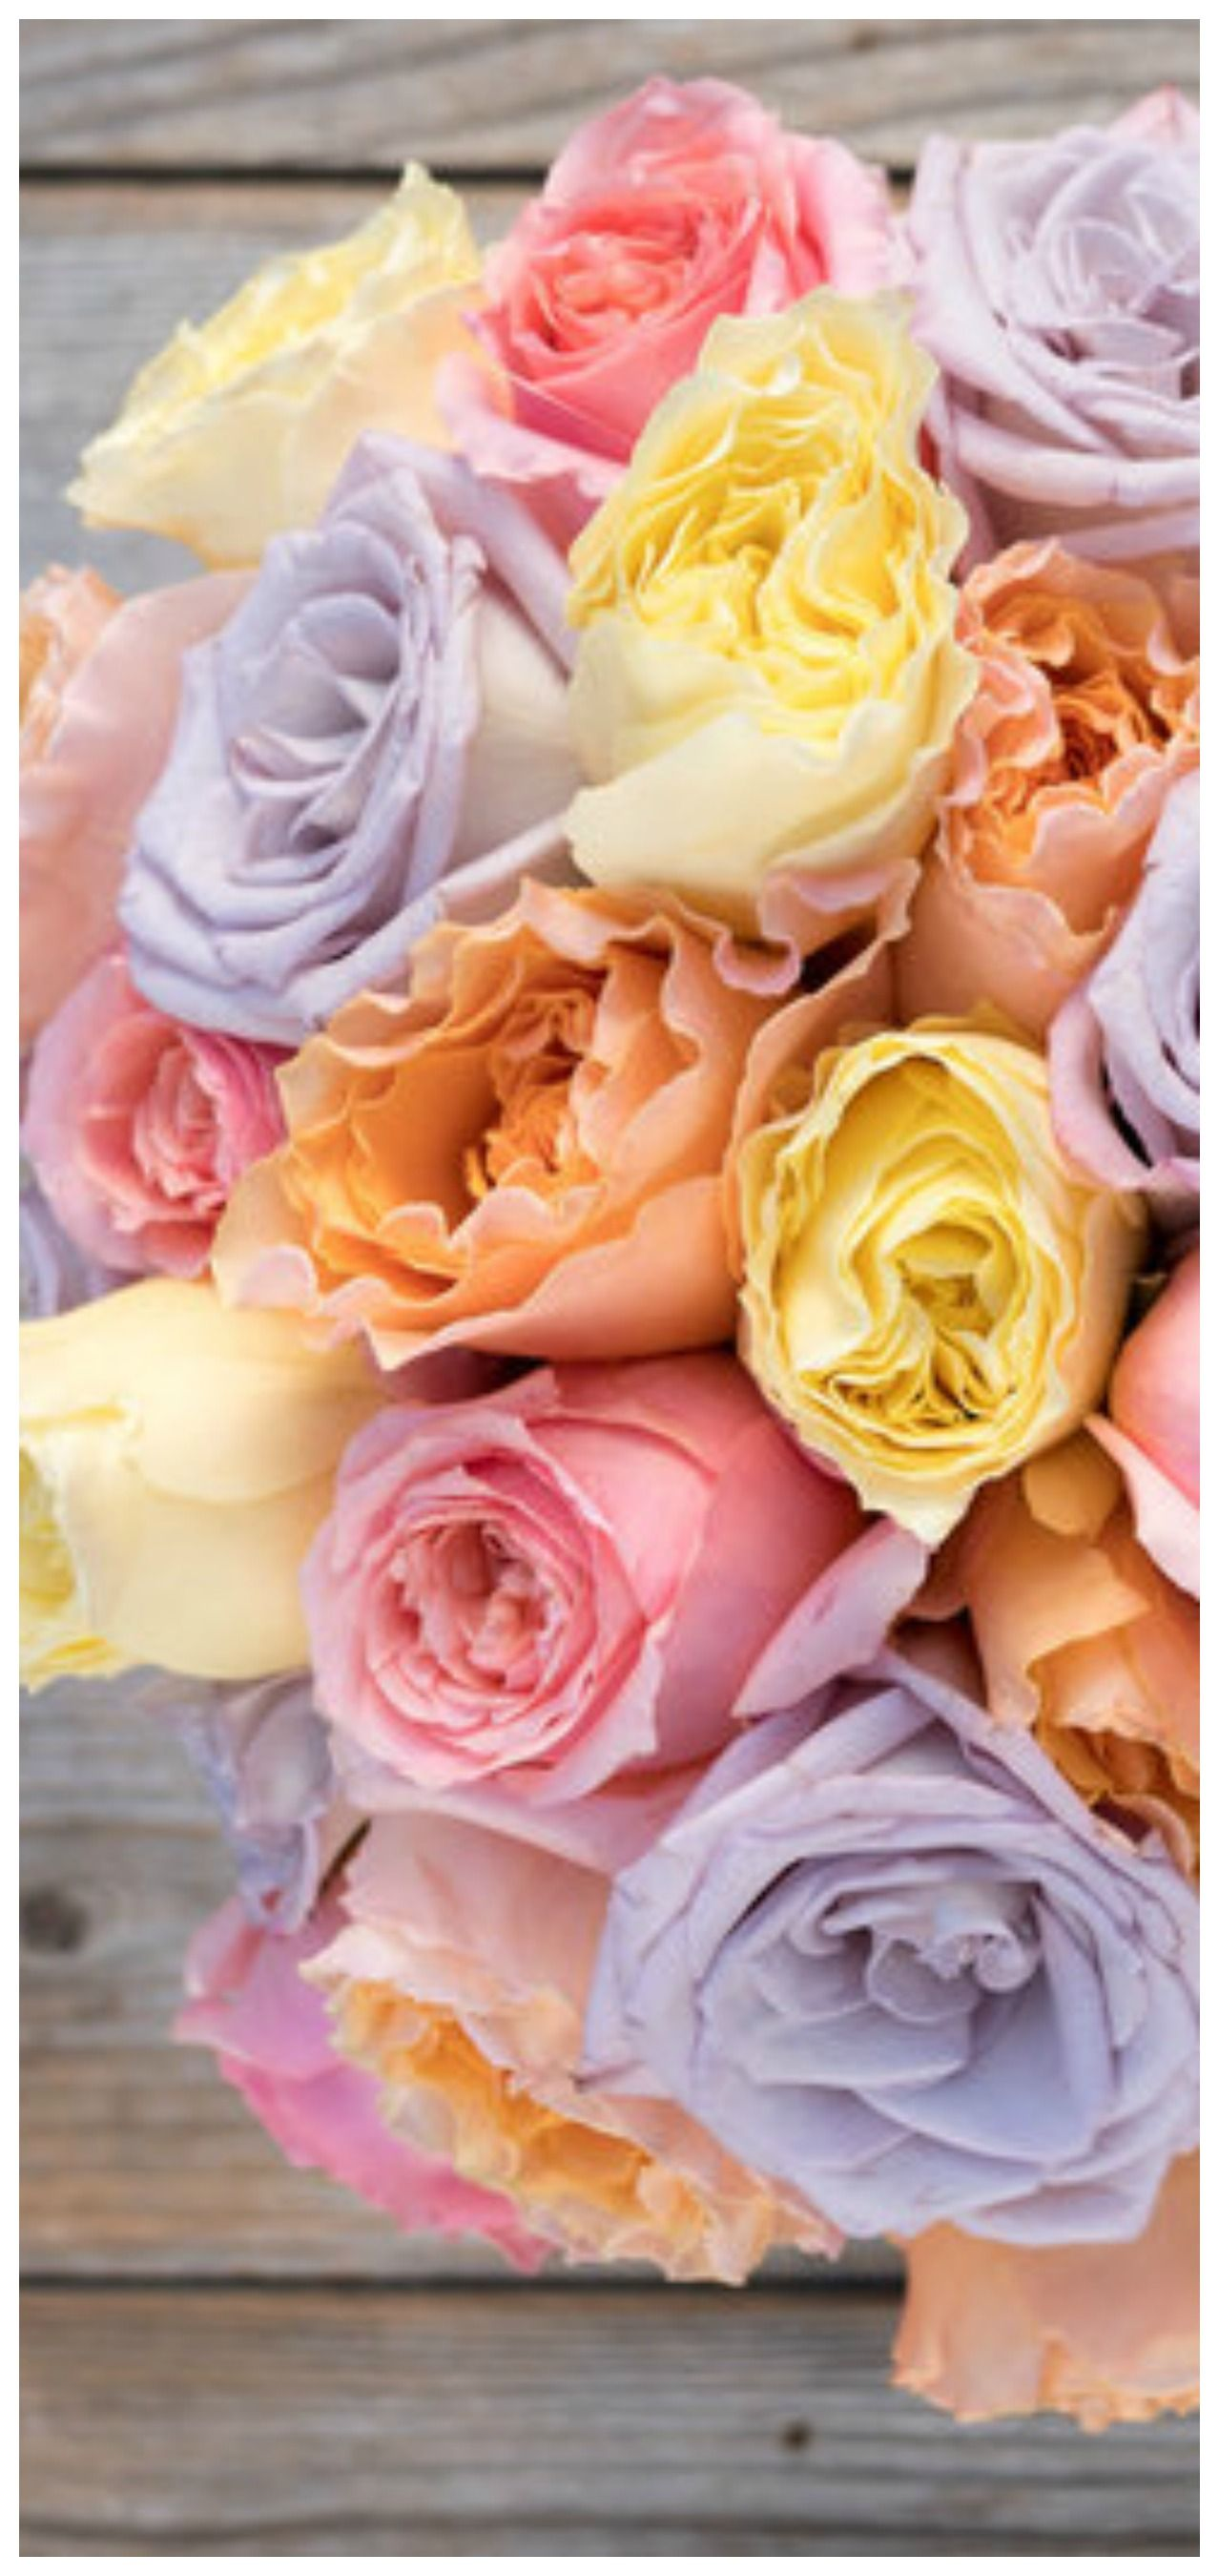 Pin by Tam's Boards ♥ on Beautiful Flowers Flower